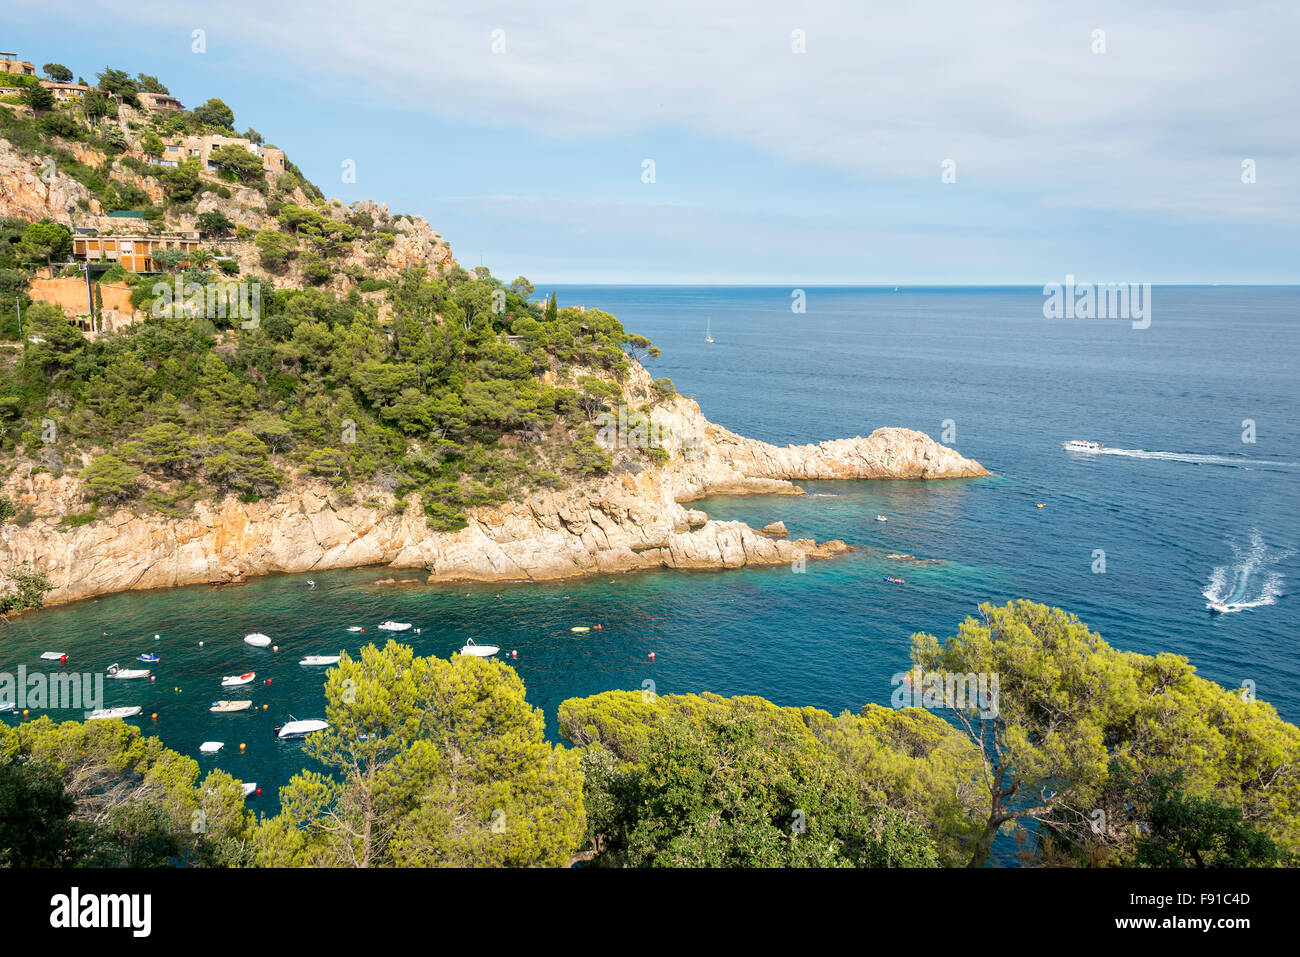 Coastal view near Tossa de Mar, Costa Brava, Province of Girona, Catalonia, Spain - Stock Image